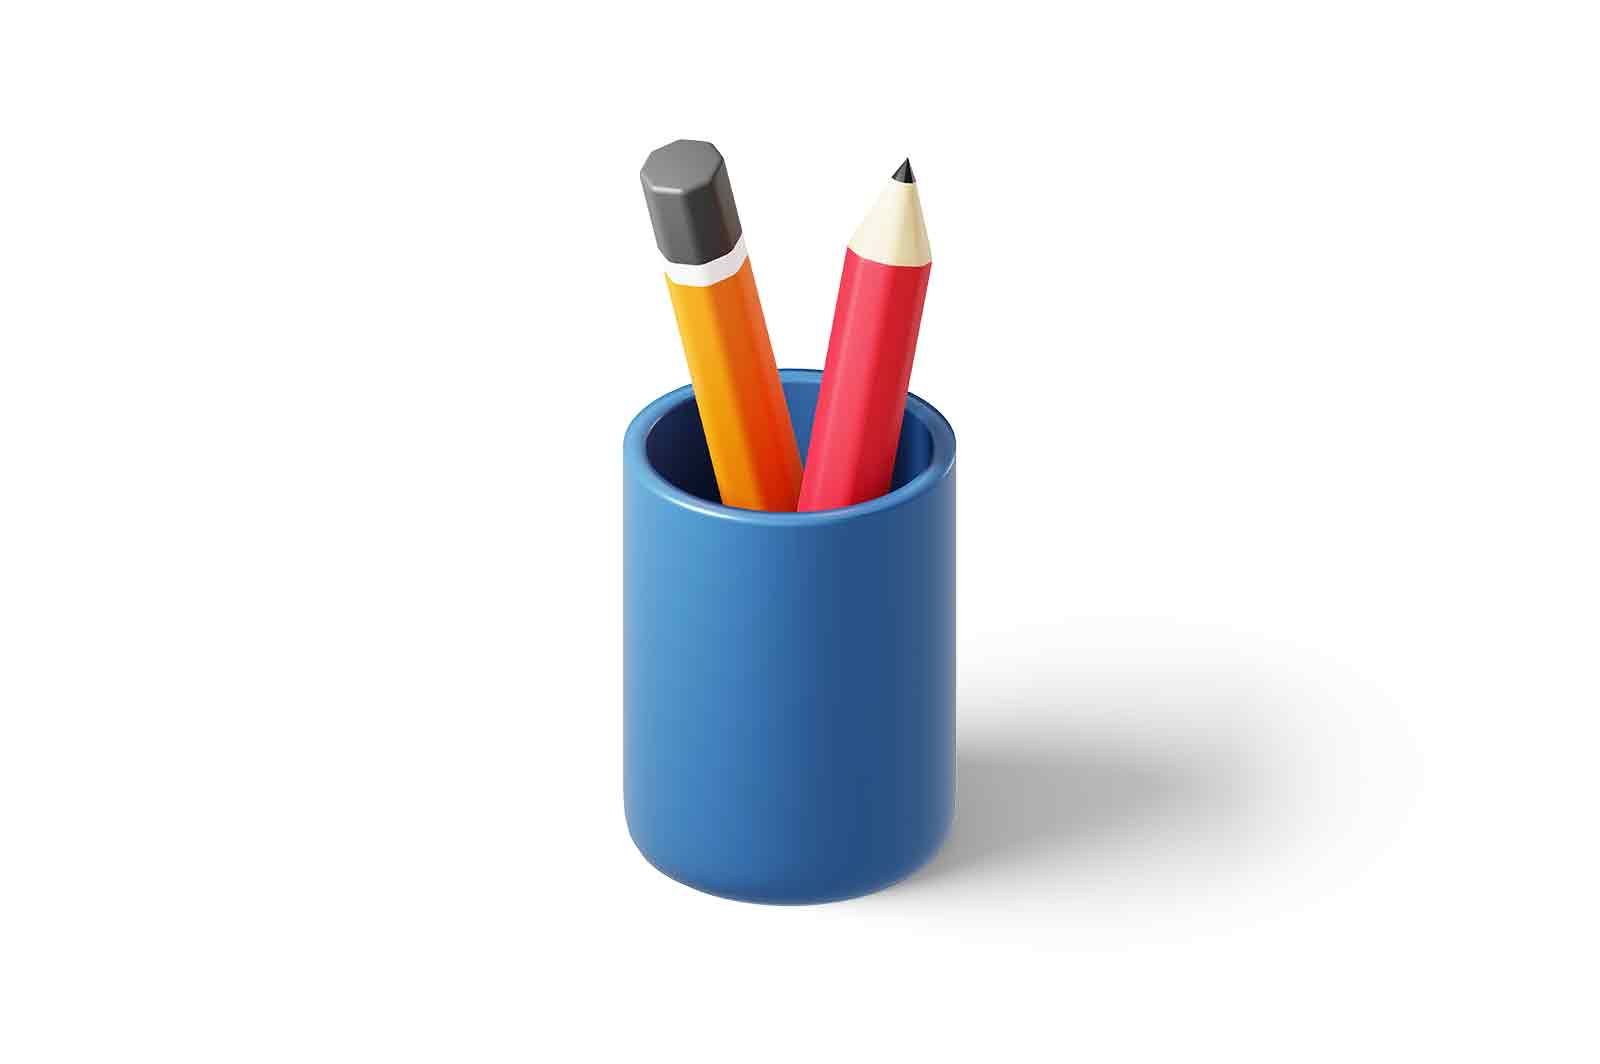 Colourful pencils in stationery glass 3d rendered illustration. Isometric simple pencils in blue cup. Office and school supplies concept